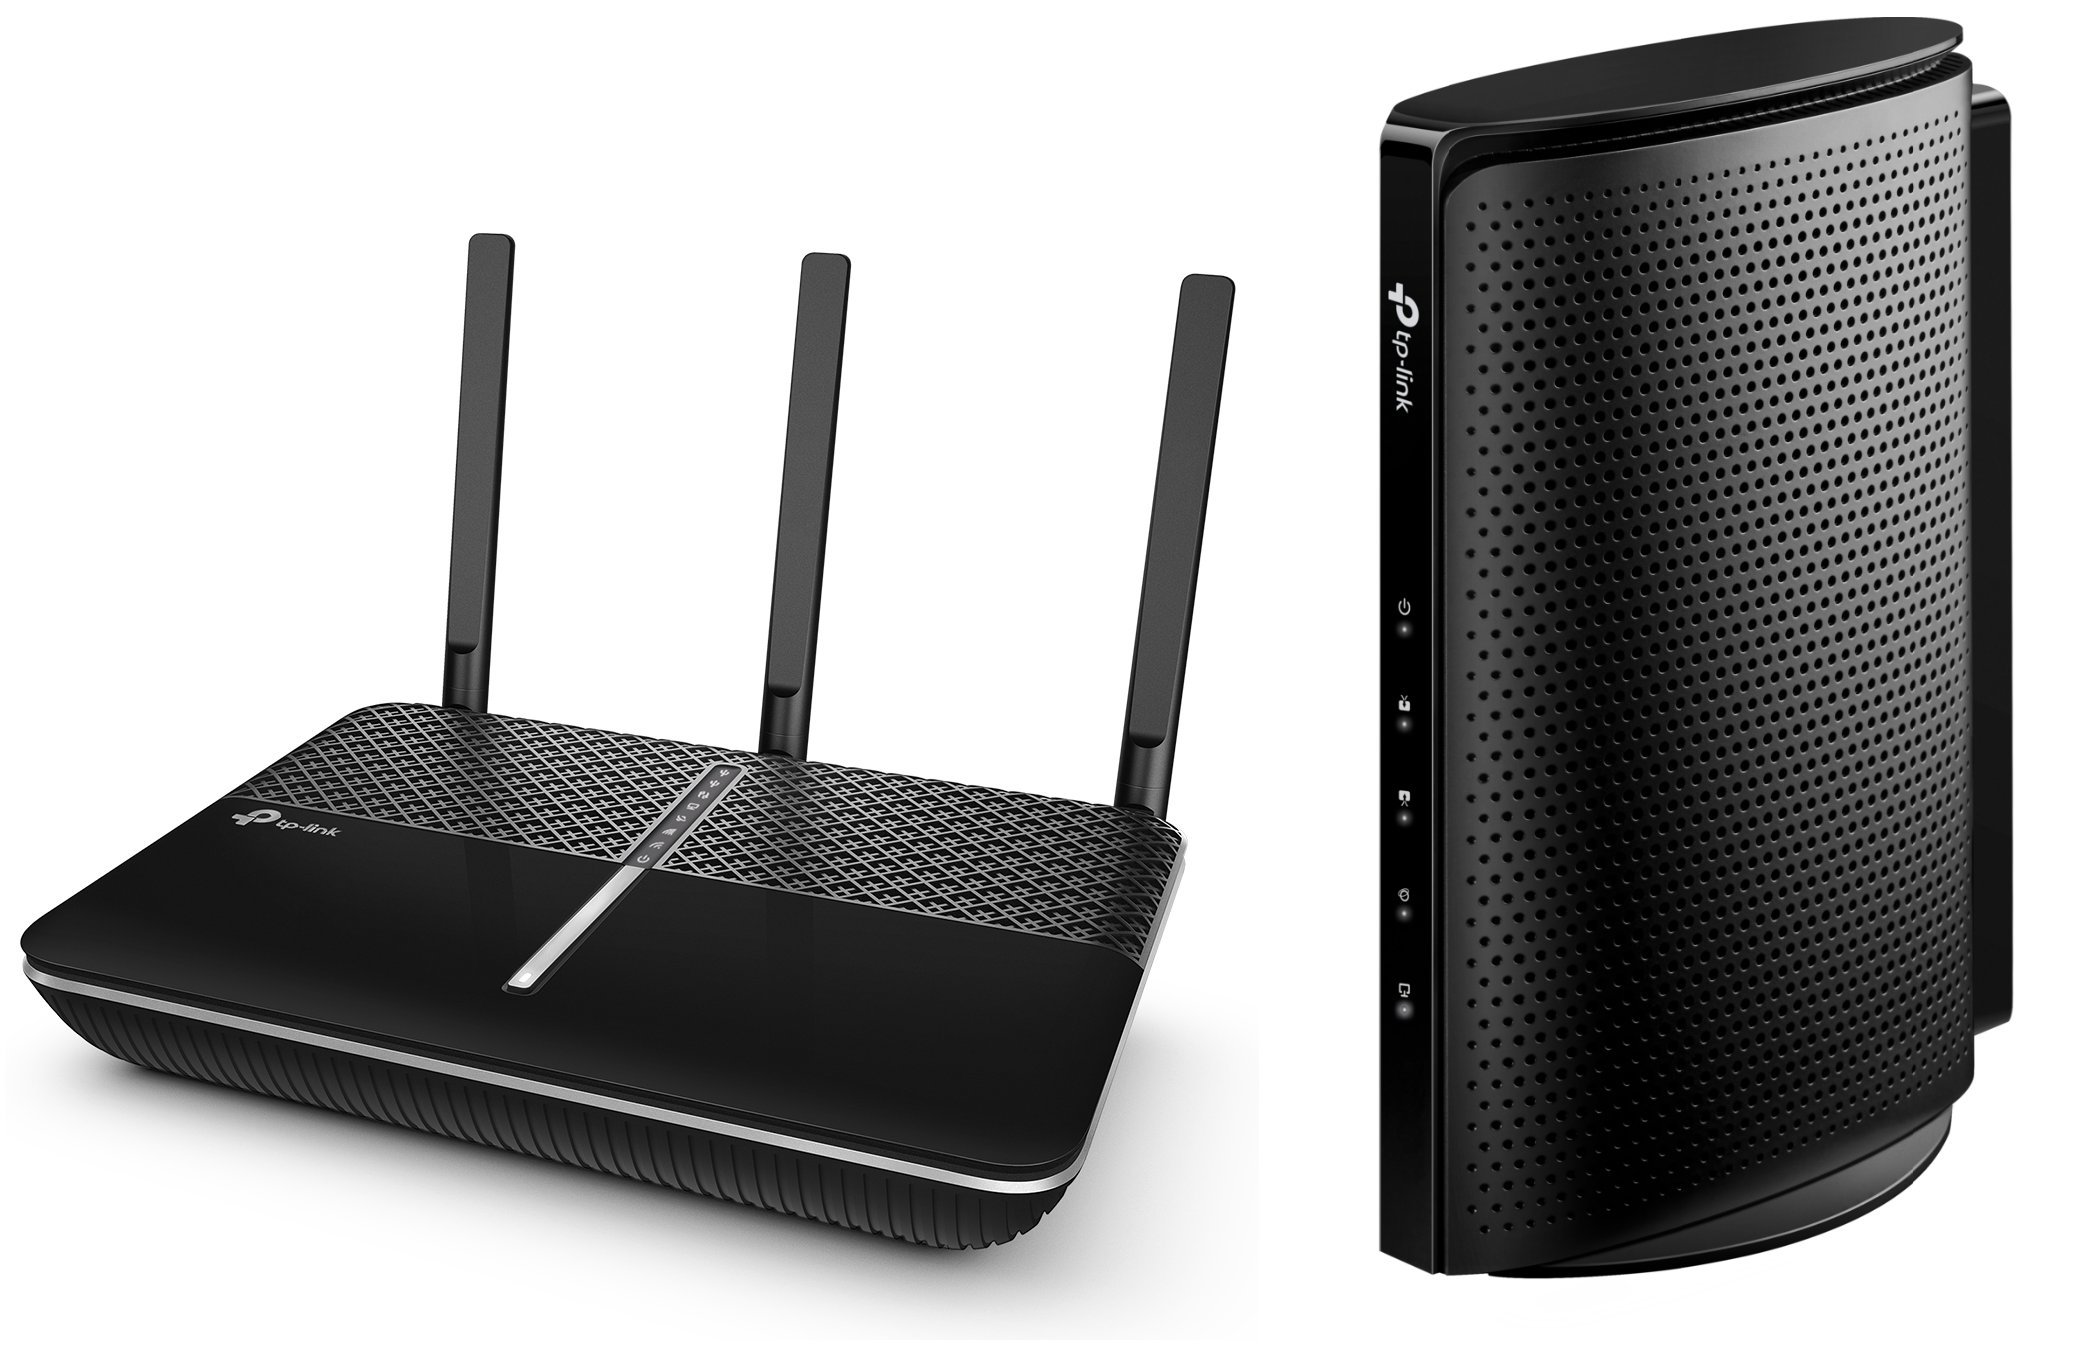 TP-Link Upgrade to a Long-Range, More Powerful Wi-Fi Bundle: Archer C2300 Wave 2 MU-MIMO Wireless Router and TC7650 (24x8) DOCSIS 3.0 High Speed Cable Modem